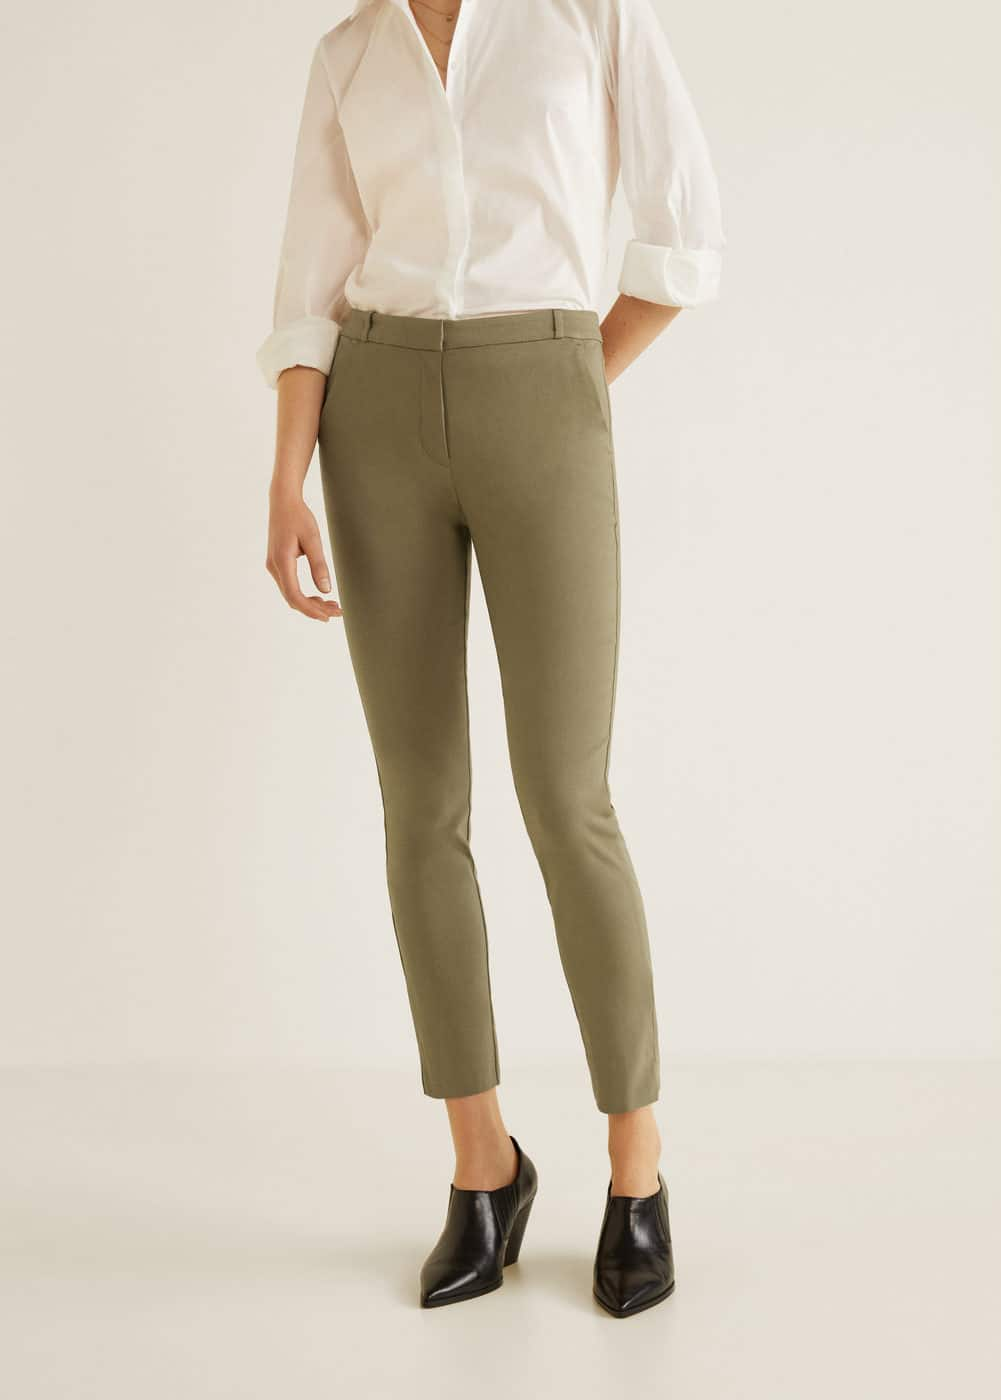 m-cola:pantalon pitillo crop